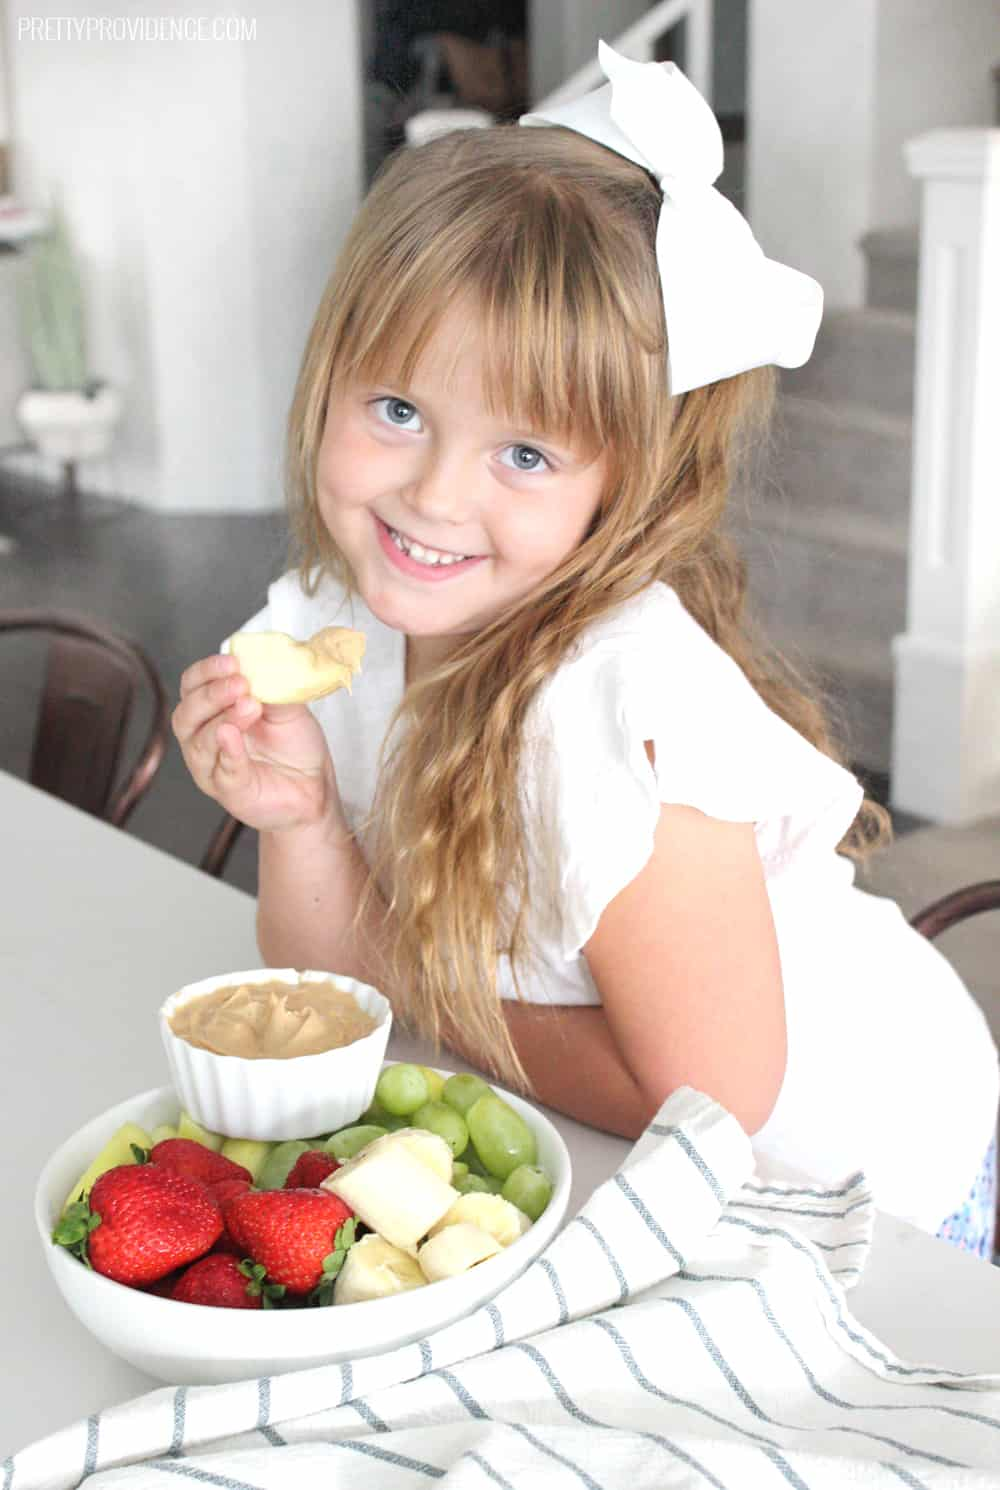 Little girl in white shirt eating strawberries, bananas, grapes and peanut butter dip.